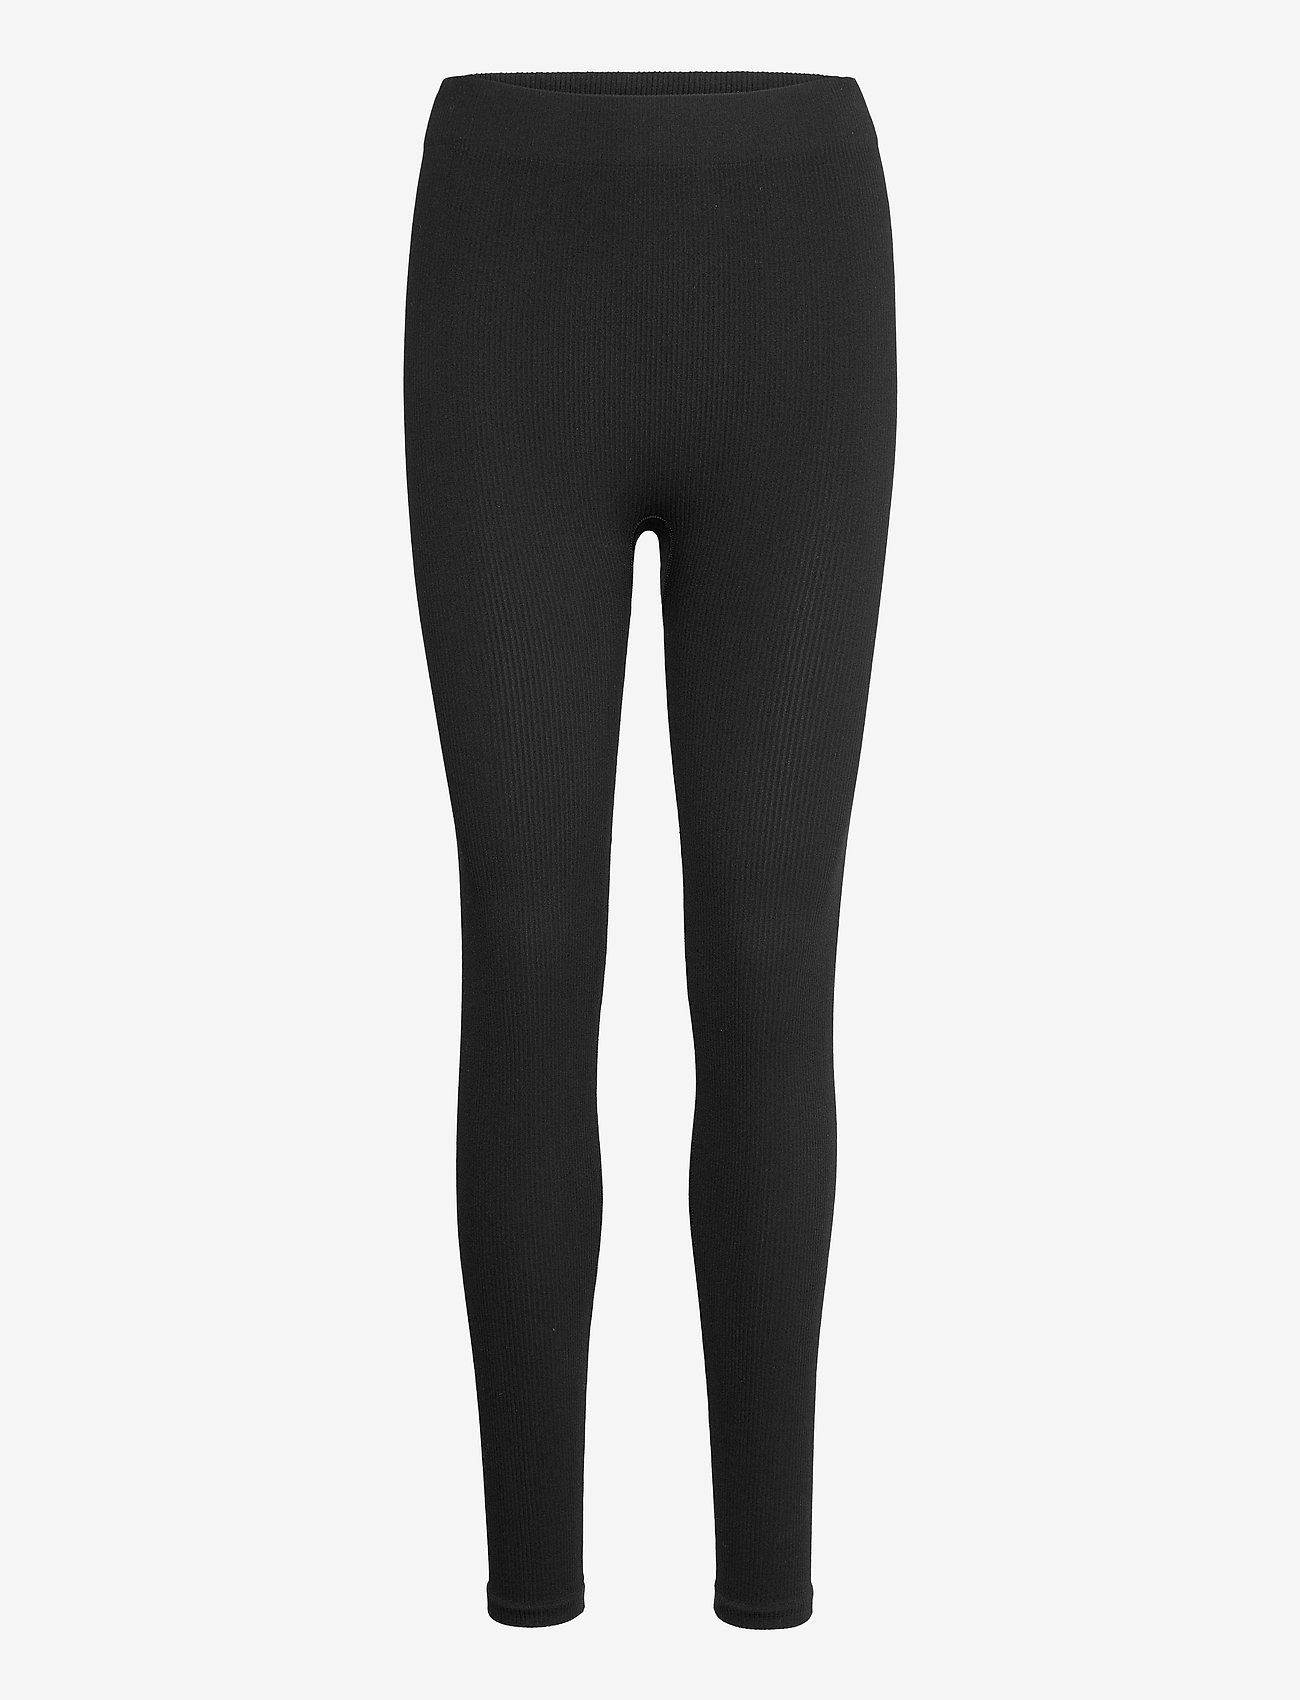 Vero Moda - VMEVE LEGGING - leggings - black - 0